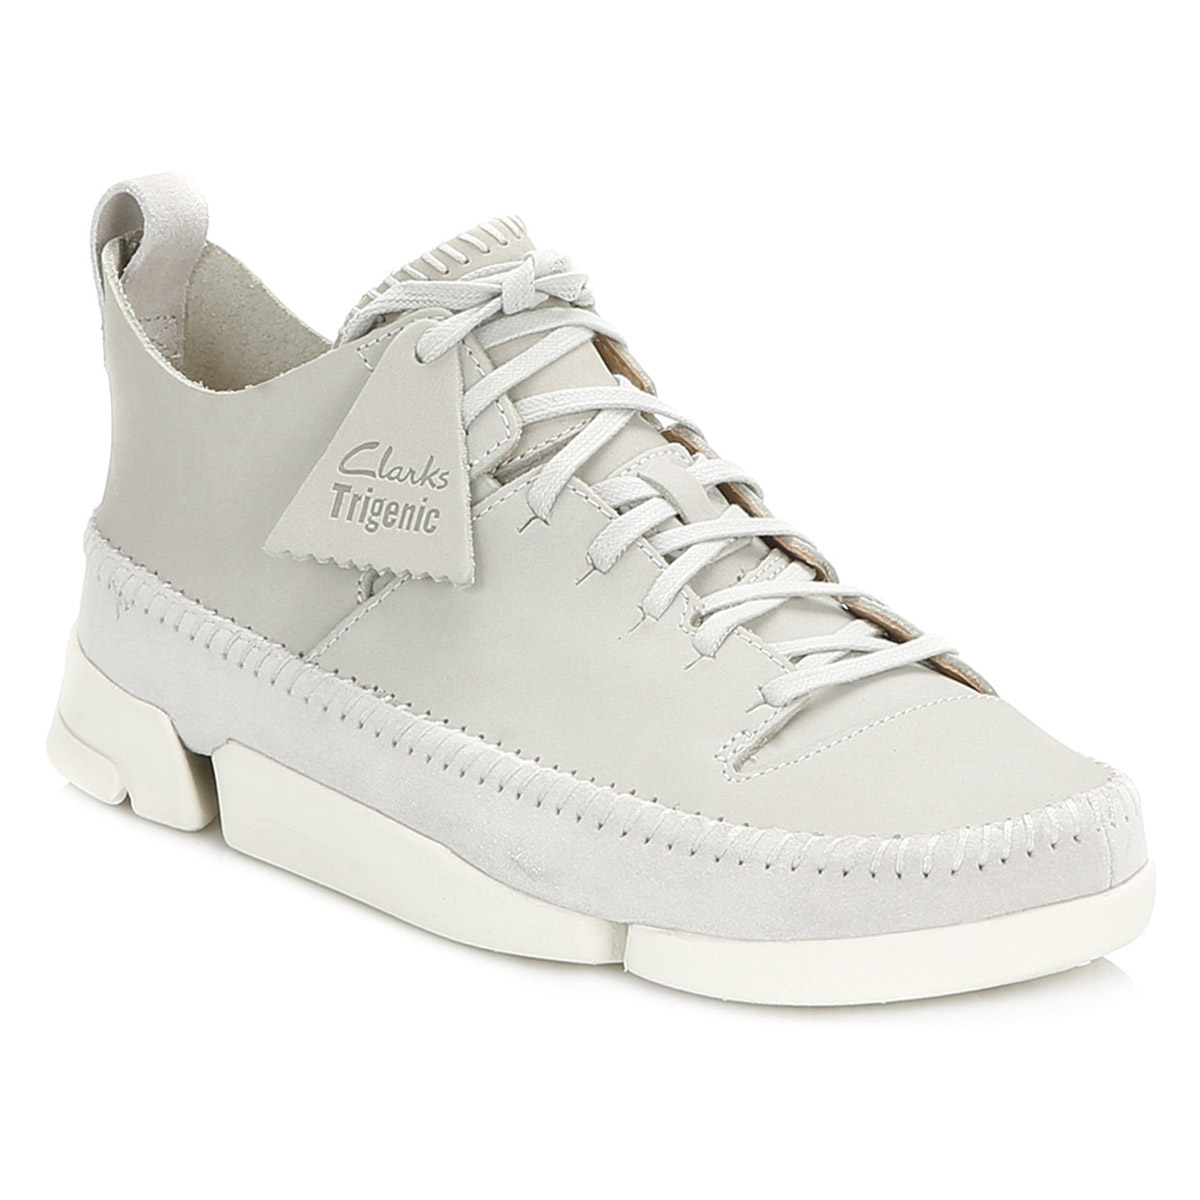 Kickers Mens Black Leather Lace Up Casual Shoes